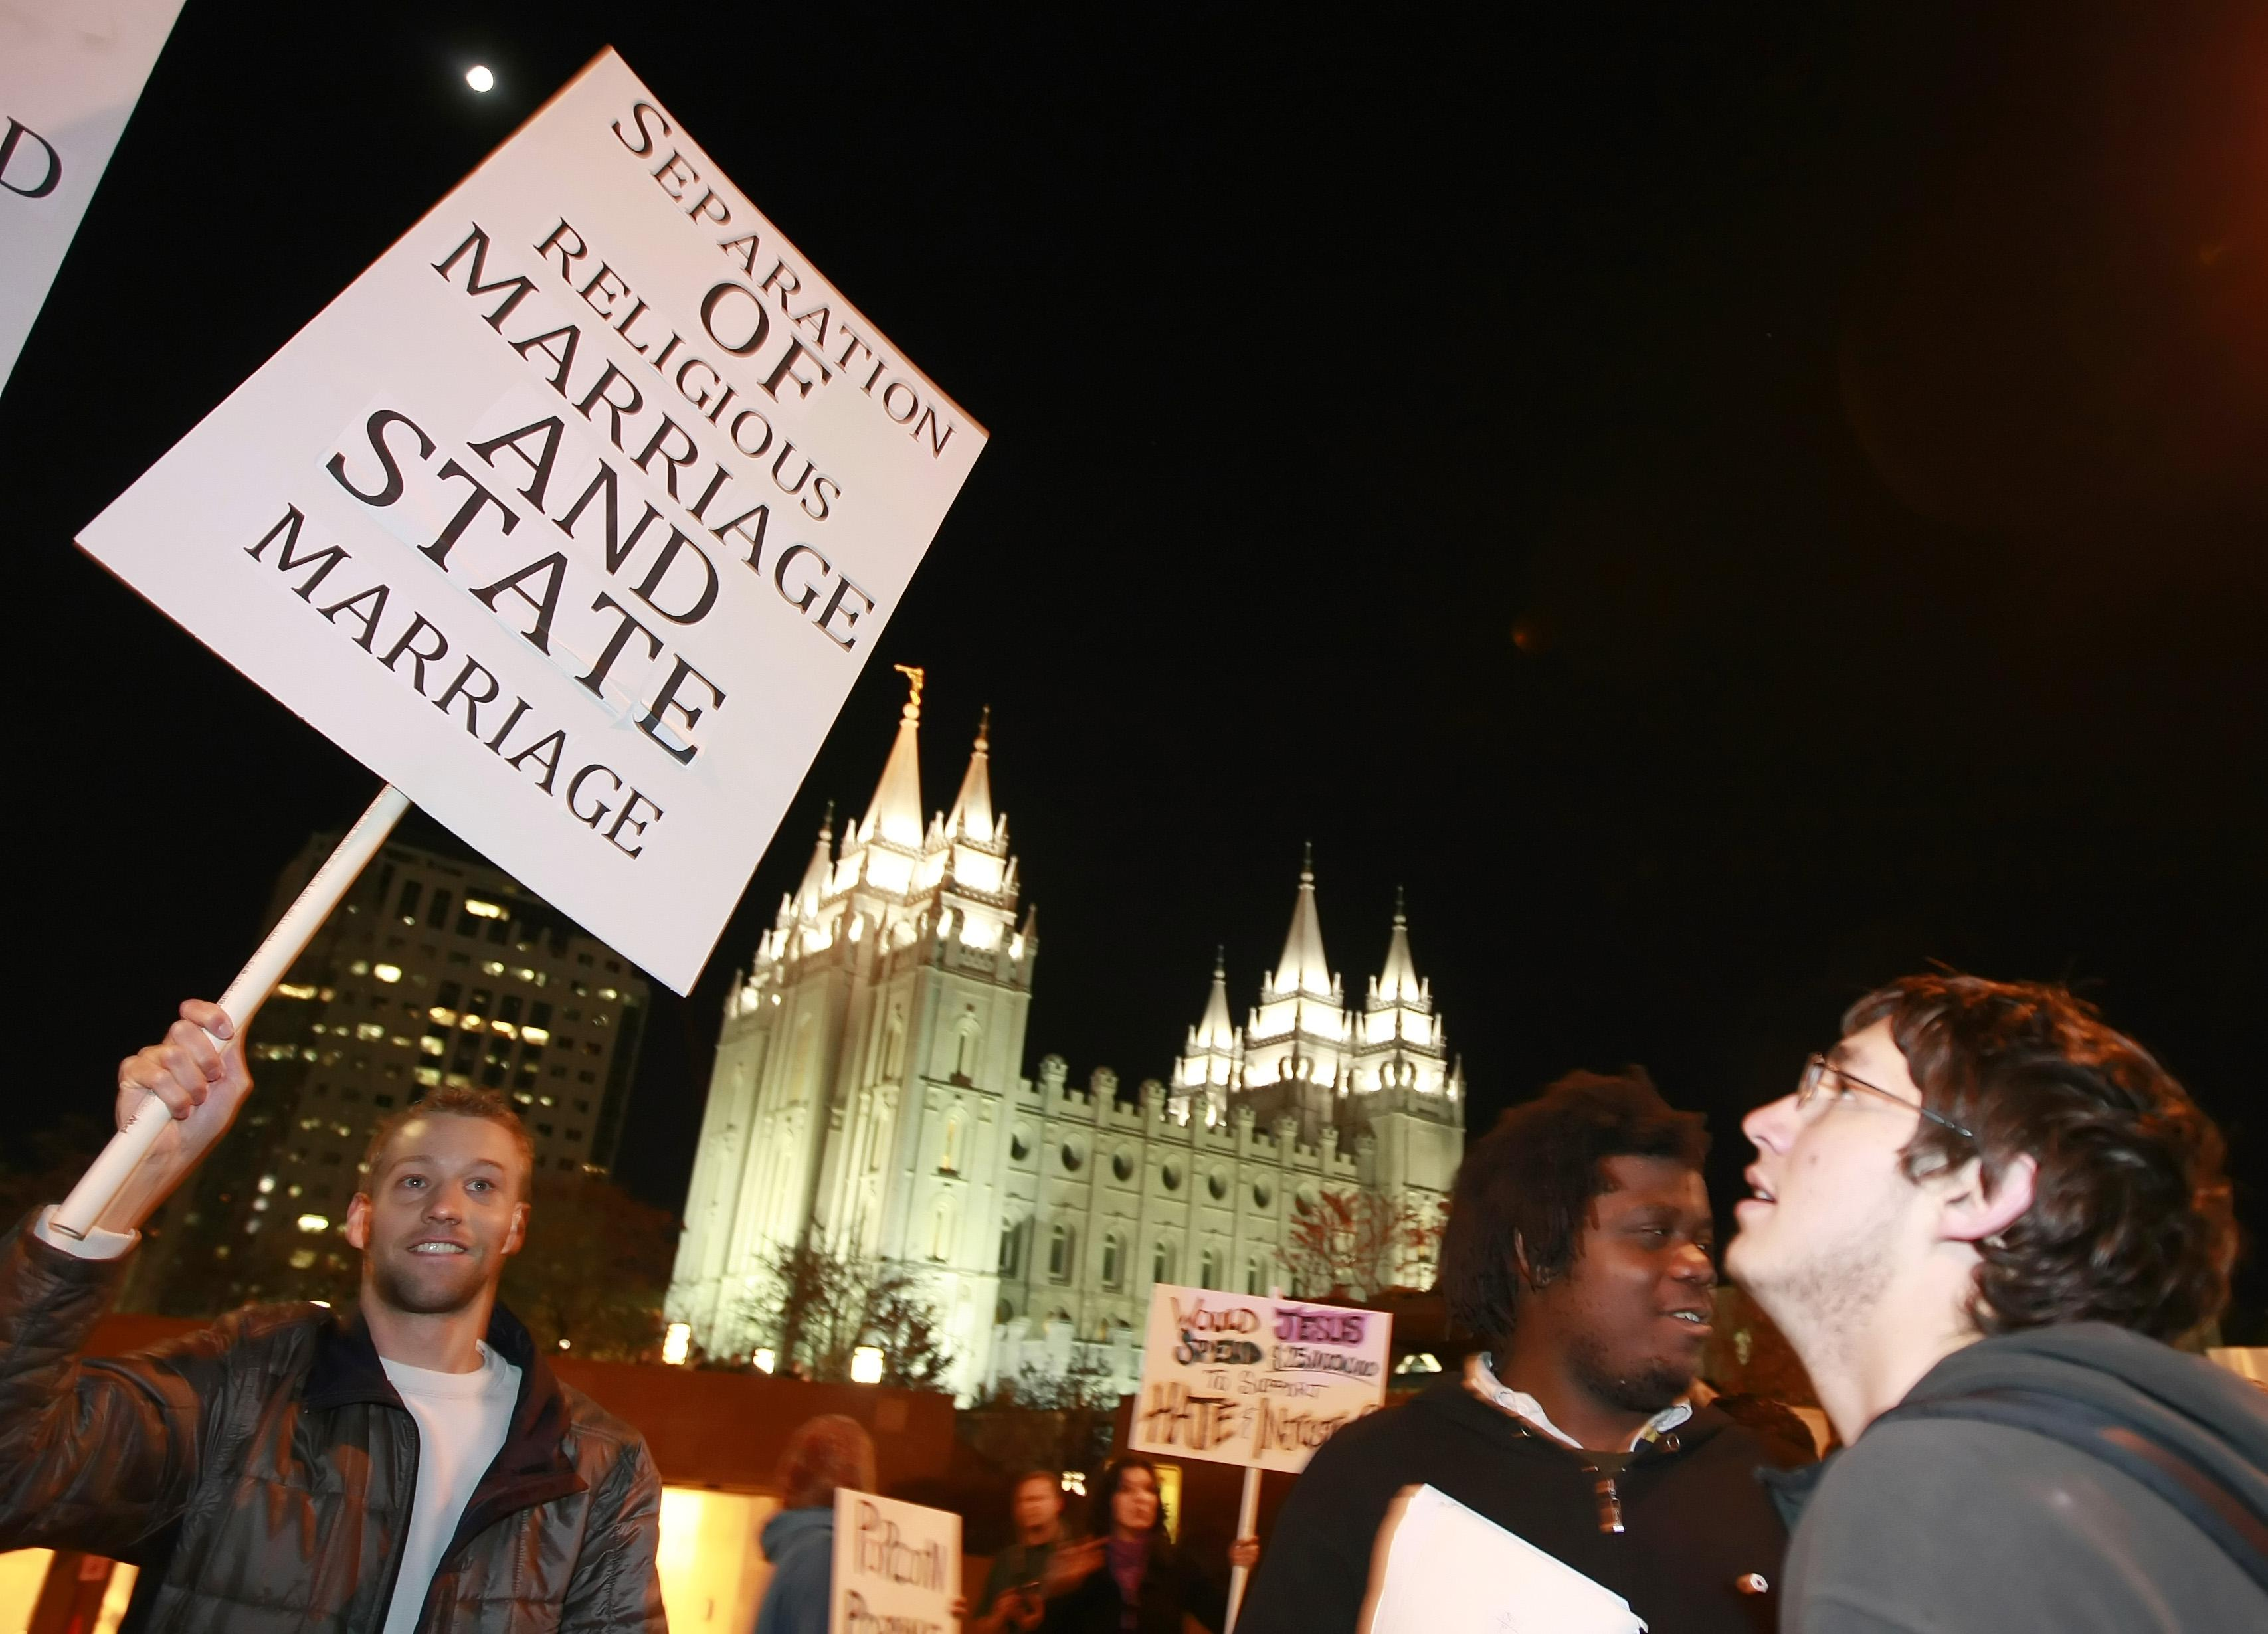 Jay Christian, left, and thousands of other people protest against the passage of California's Proposition 8 outside the world headquarters of Temple of the Church of Jesus Christ of Latter Day Saints.